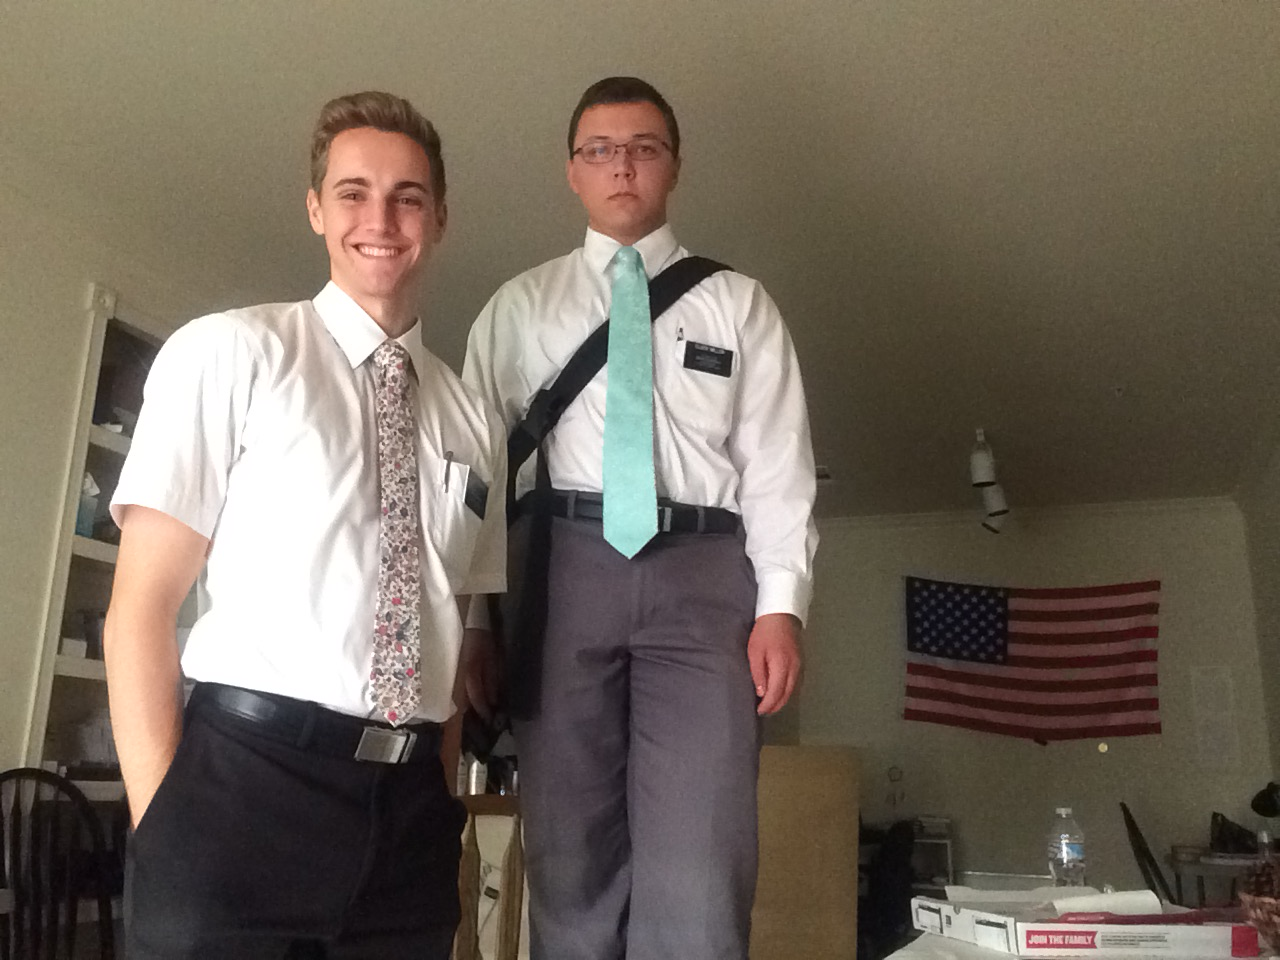 2nd Companion - Elder Miller from Utah